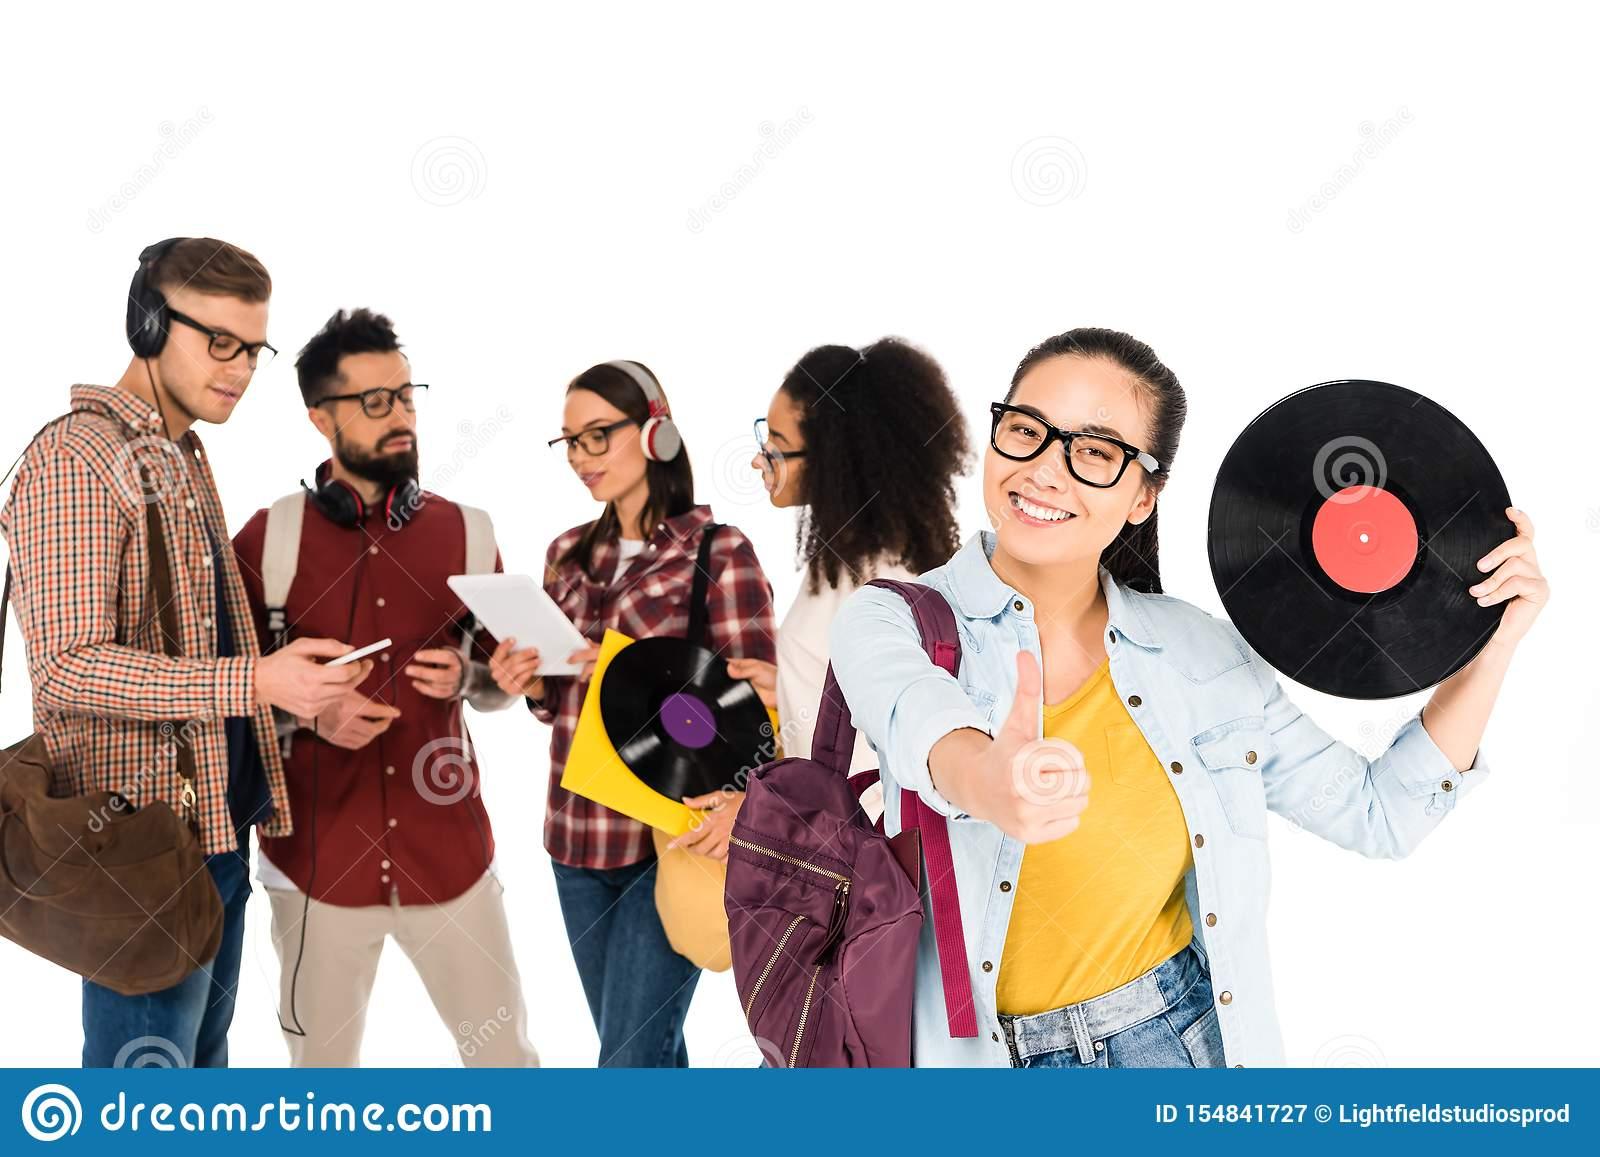 beautiful girl showing thumb up while holding vinyl record near milticultural group of people isolated